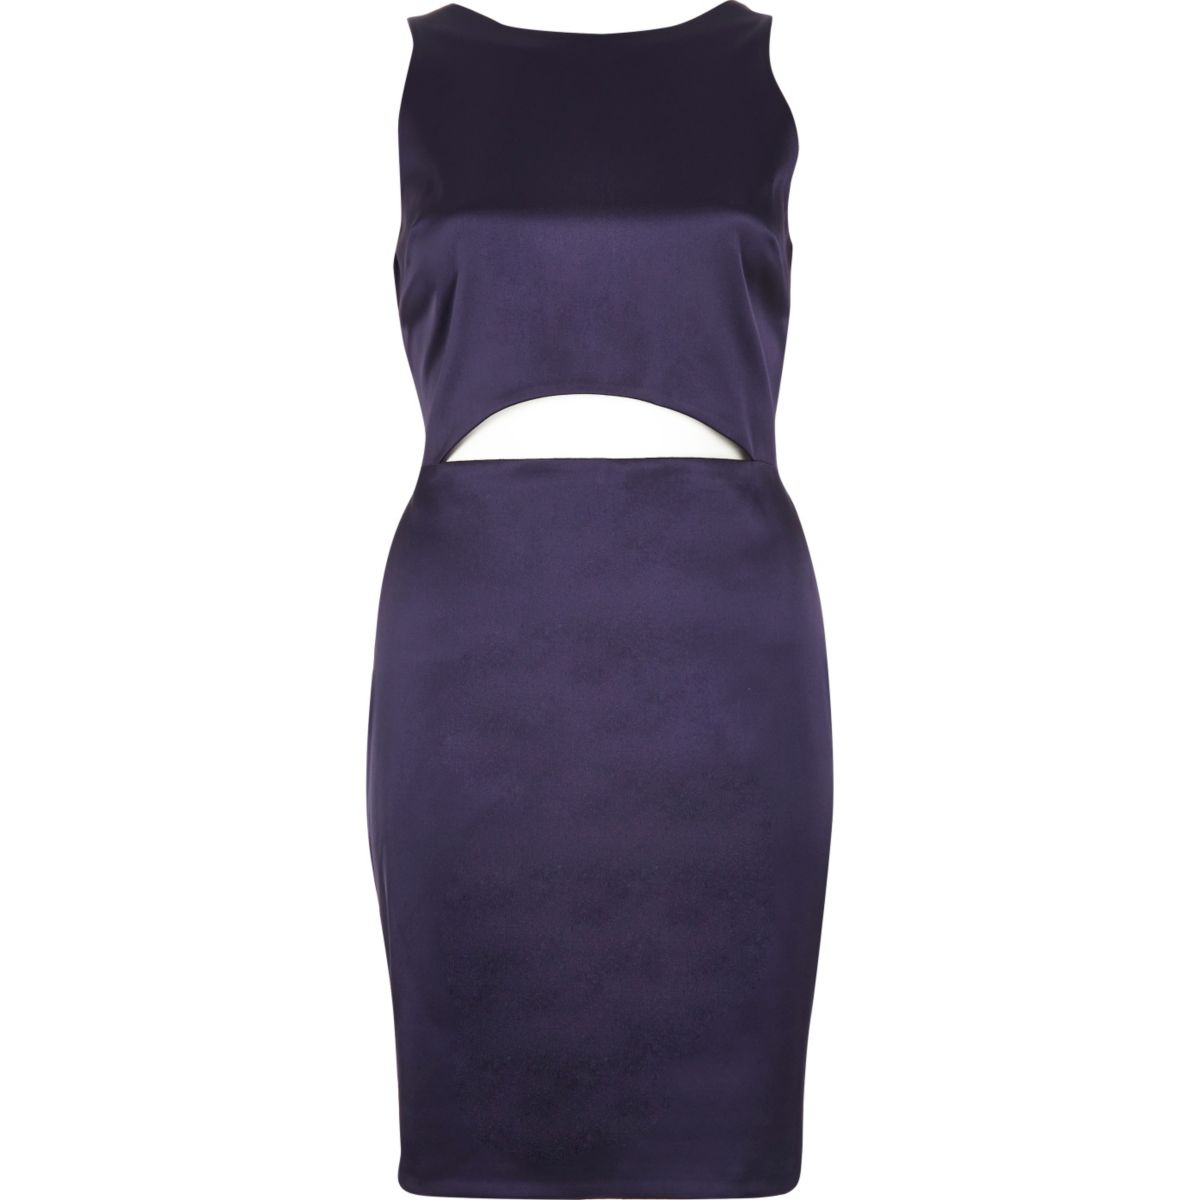 Dark purple cut-out mini dress